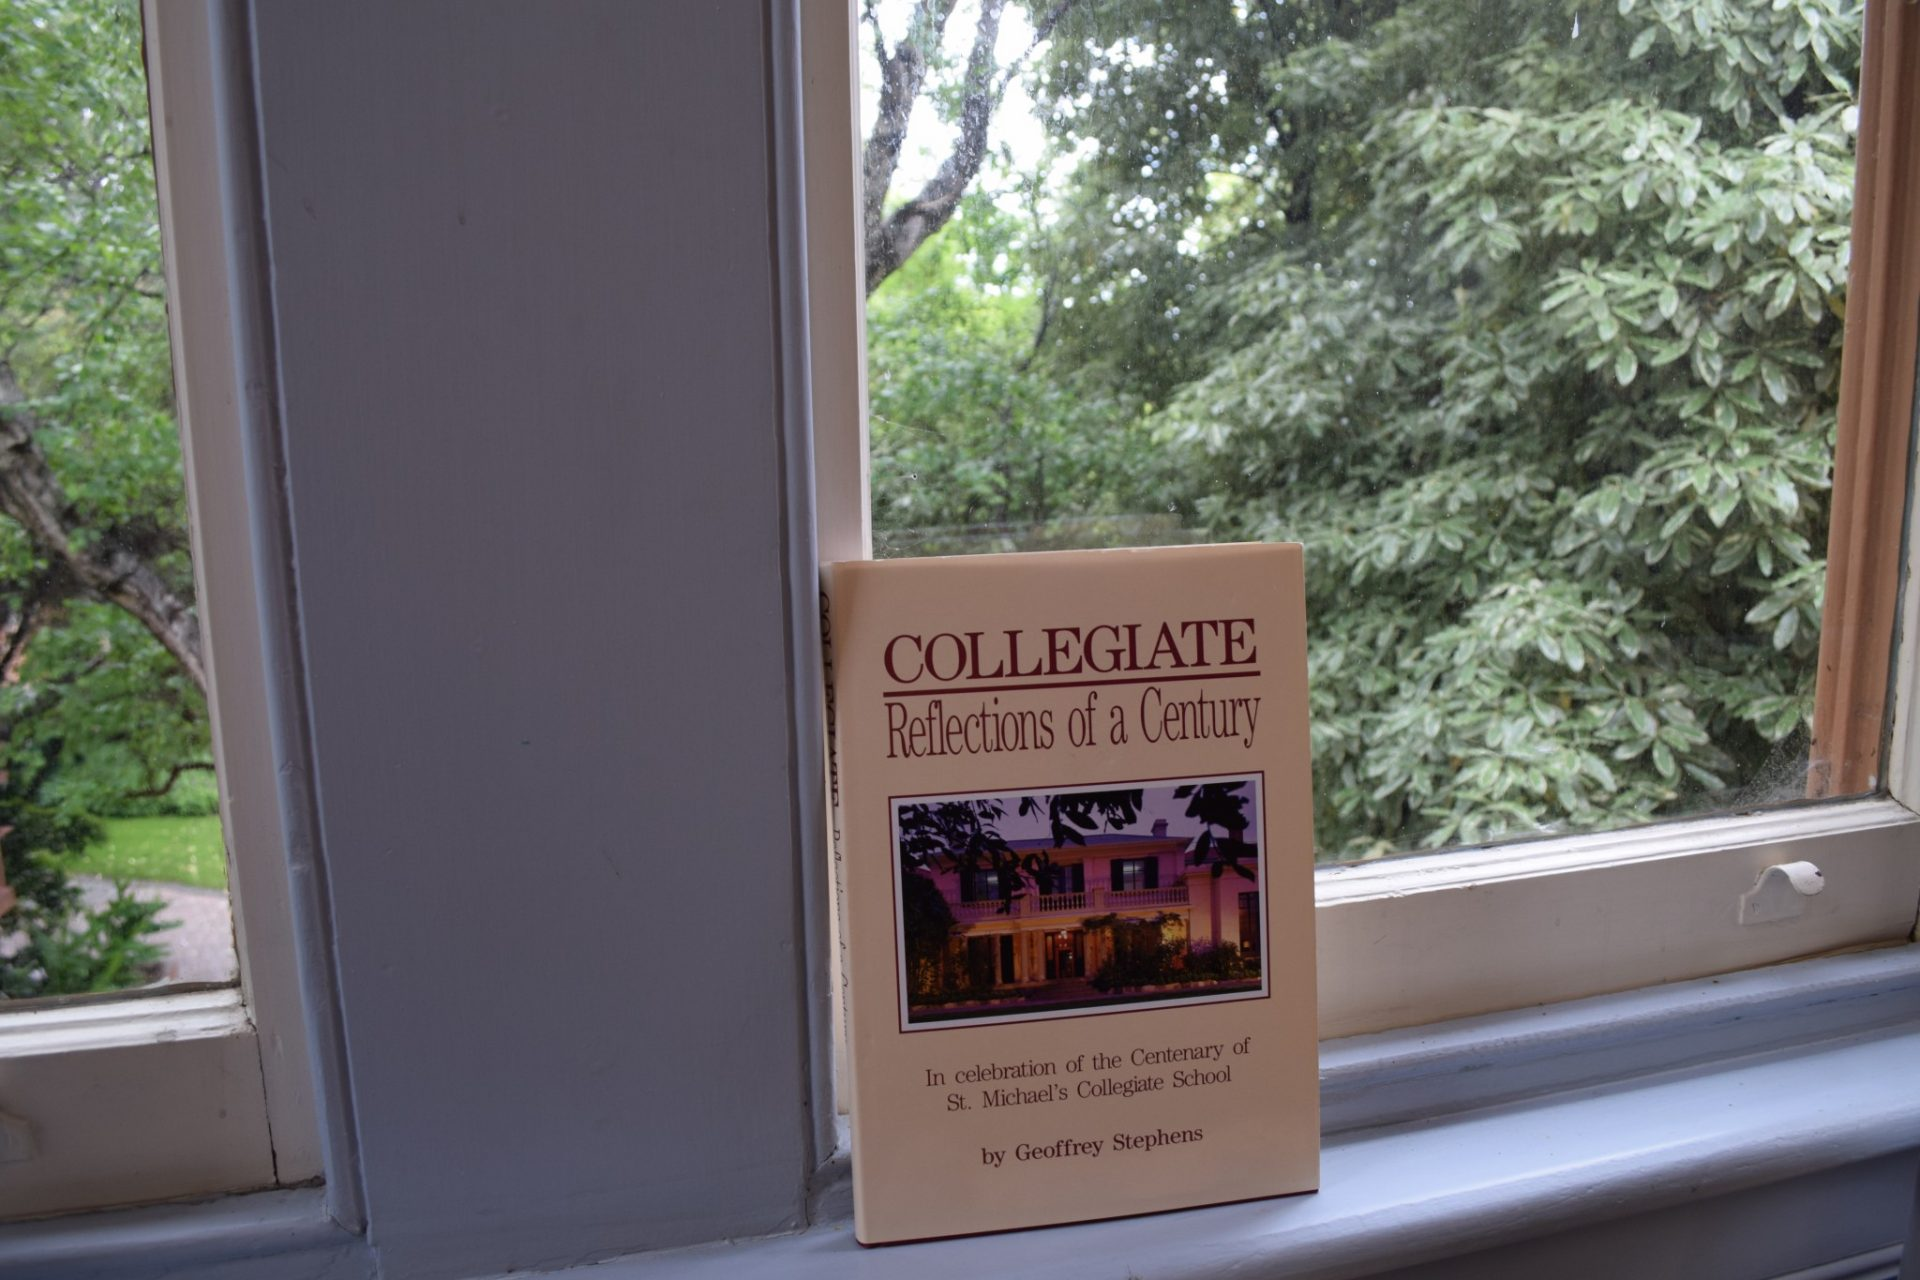 Collegiate Reflections of a Century